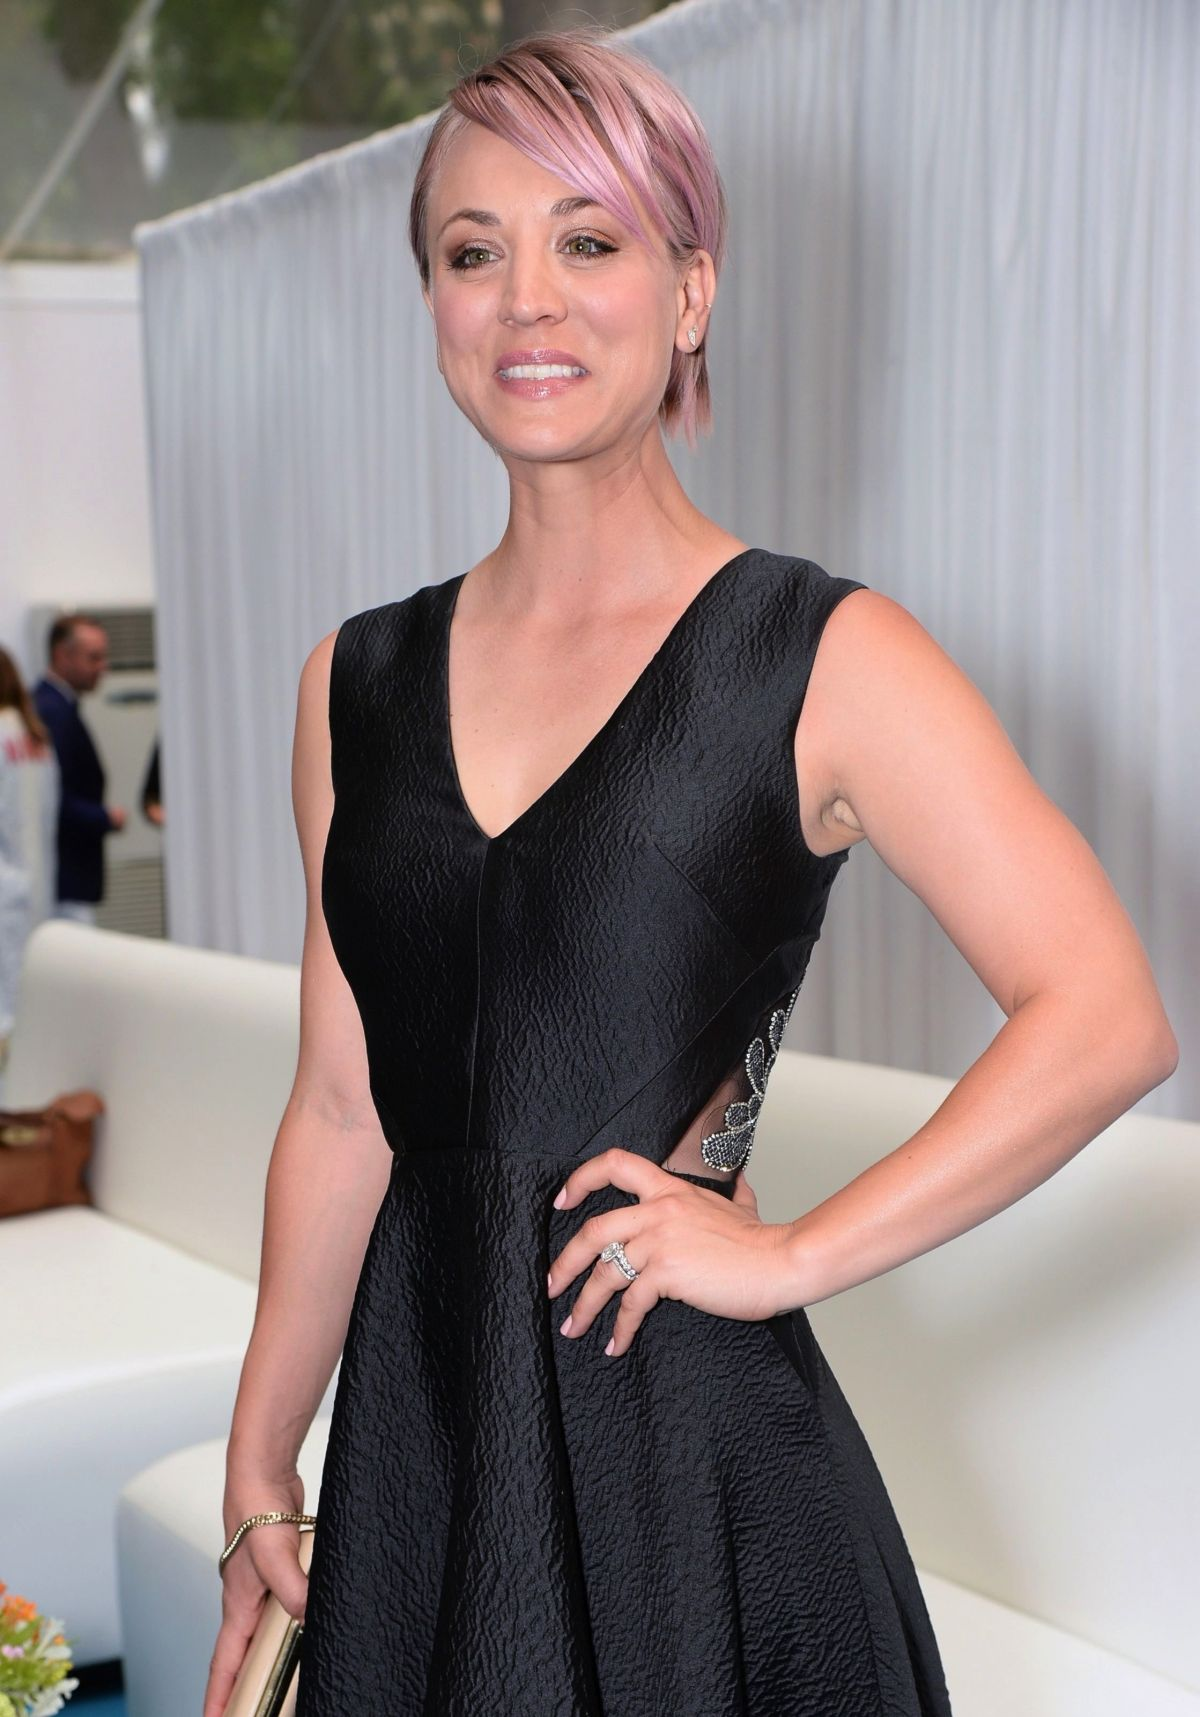 KALEY CUOCO at Glamour Women of the Year Awards in London